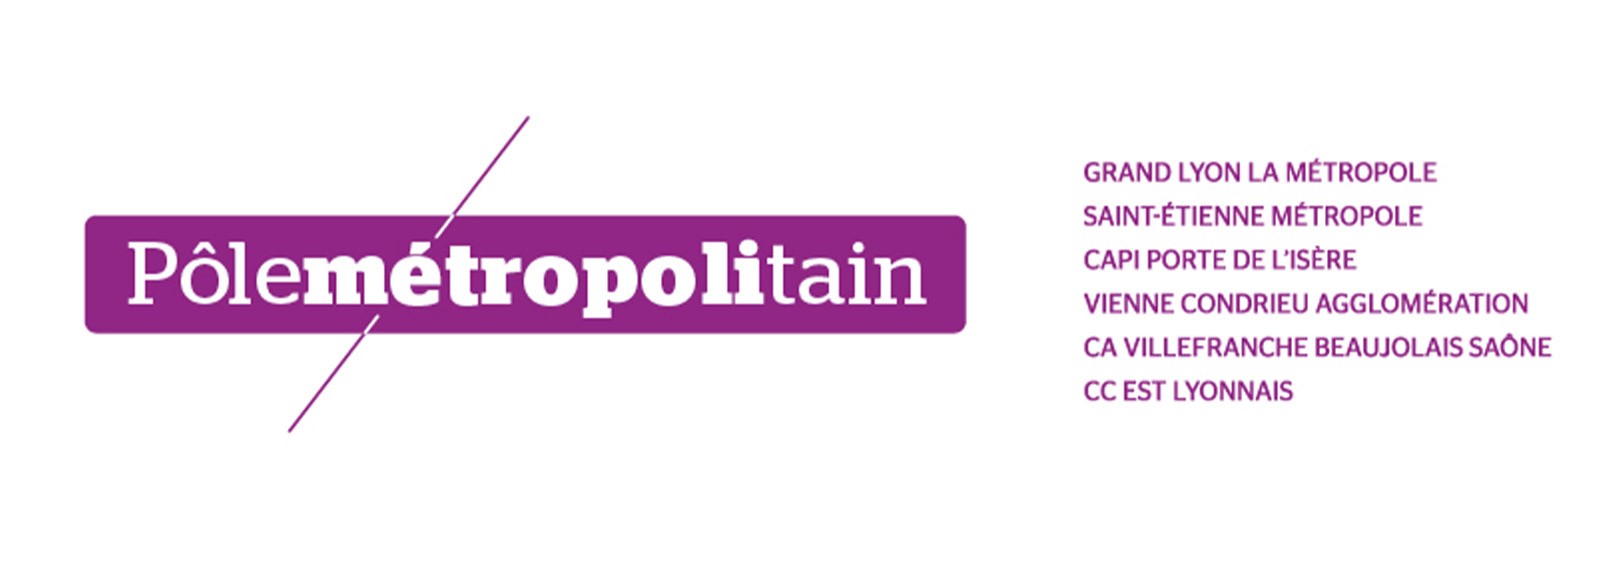 Pole_Metropolitain_logo